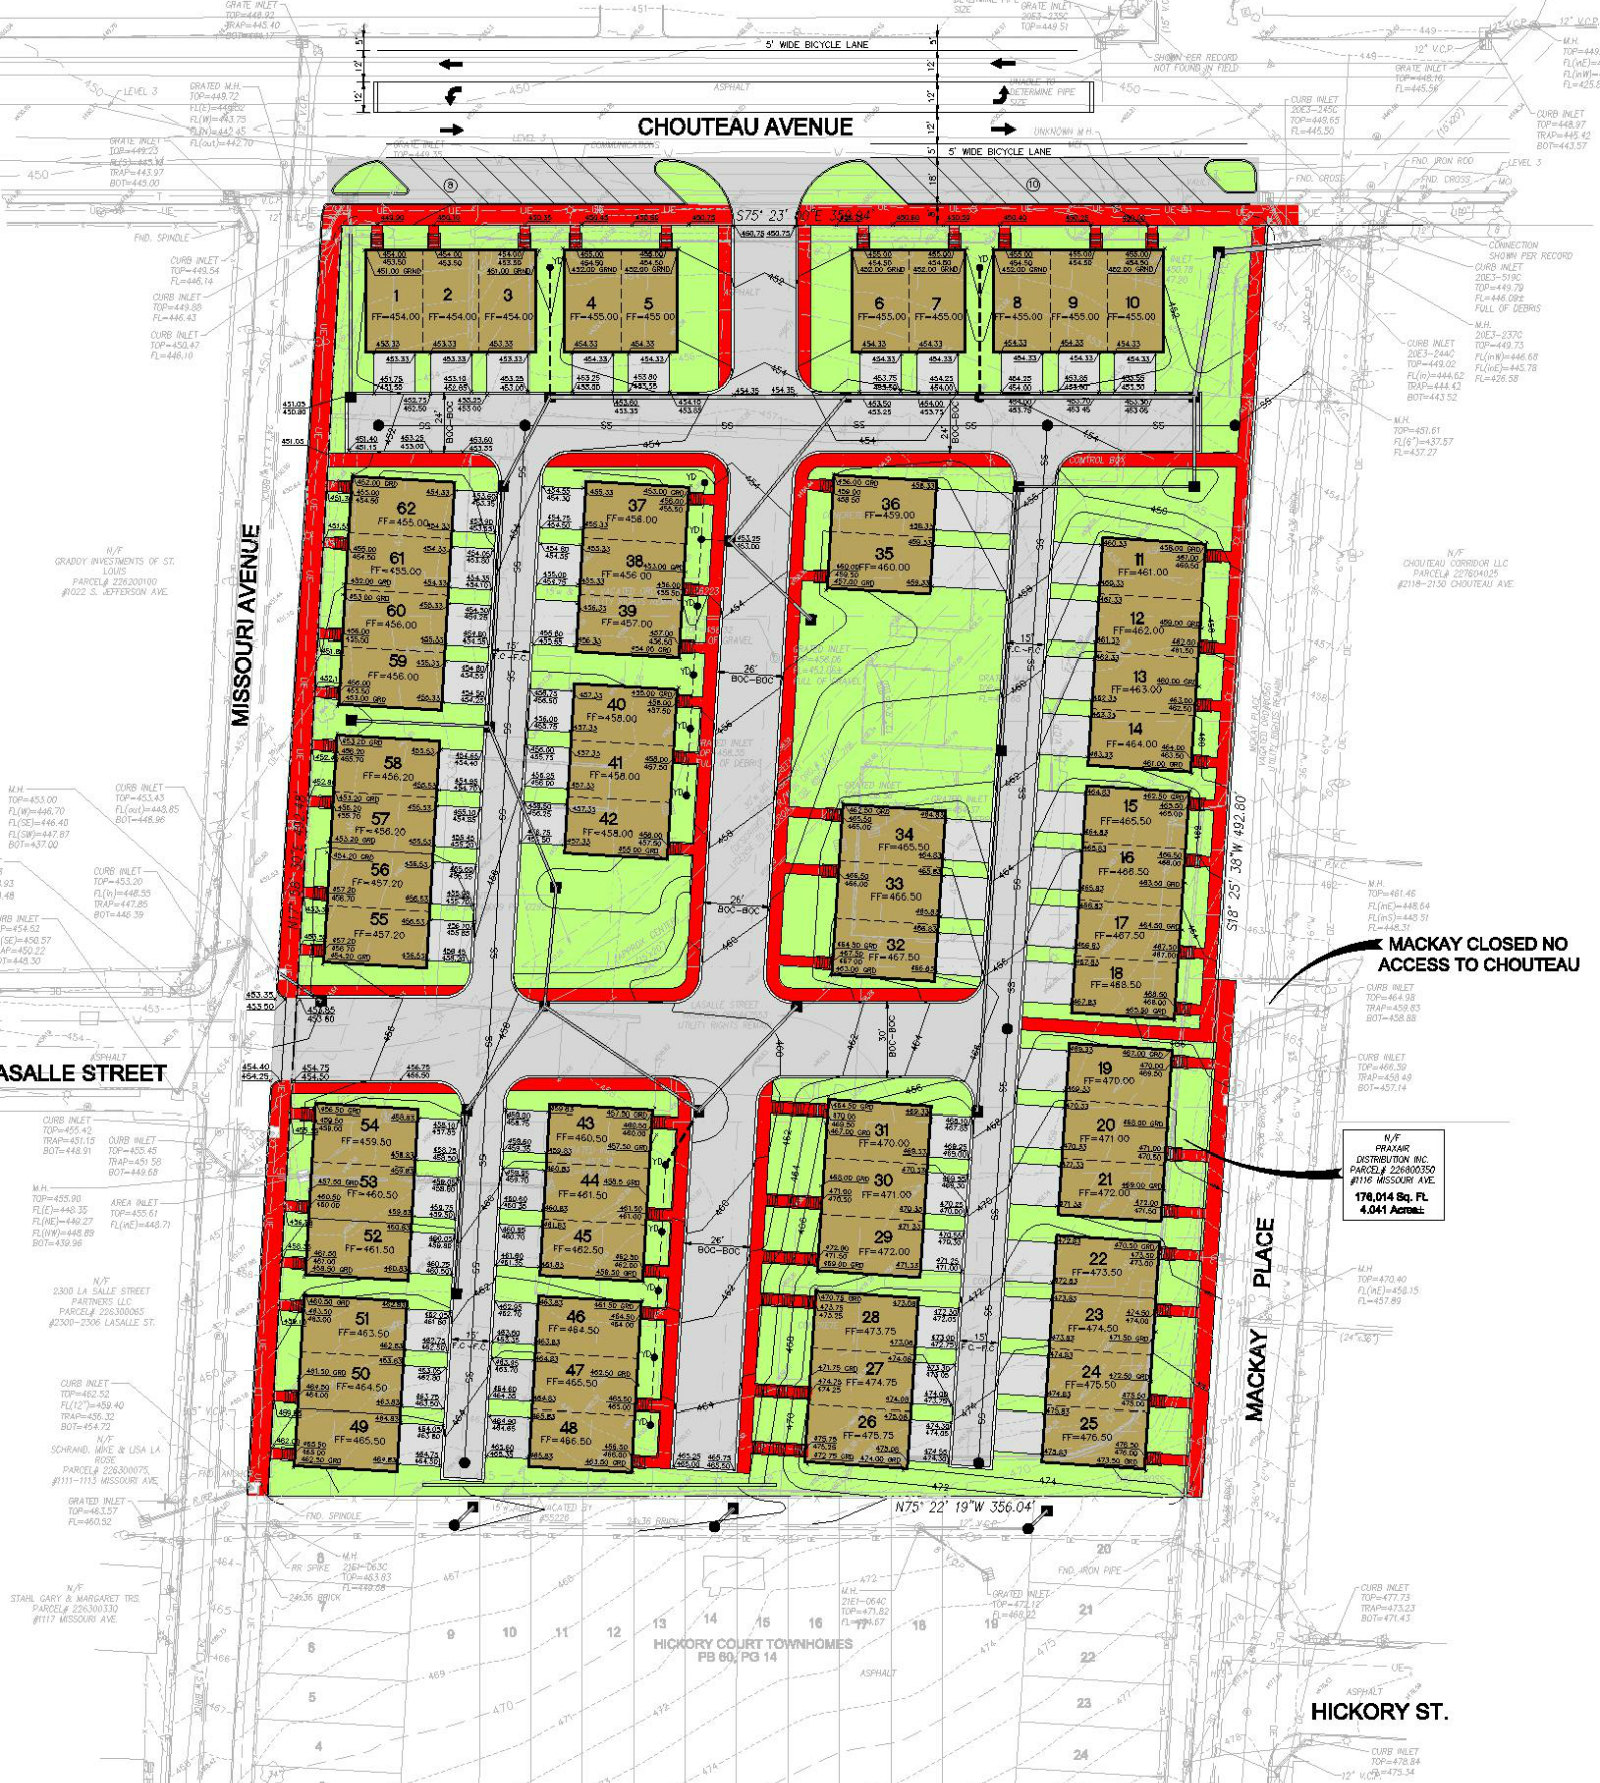 100 infill lot infill is in for homebuilders millennial